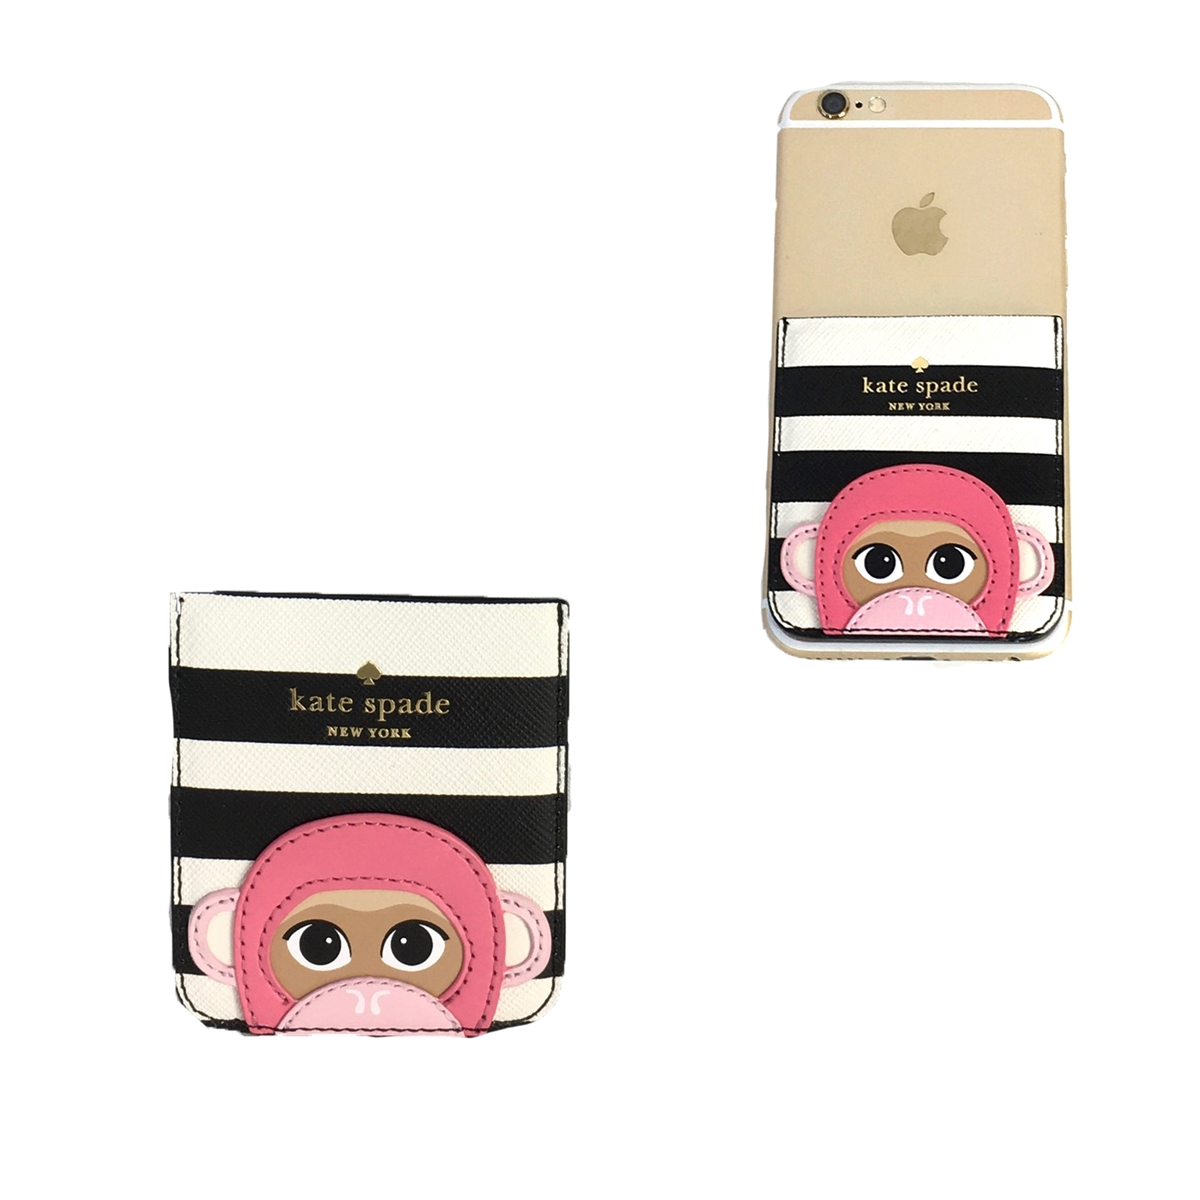 low priced cd2b0 c53d0 Kate Spade Monkey Applique Sticker Phone Pocket, Multi